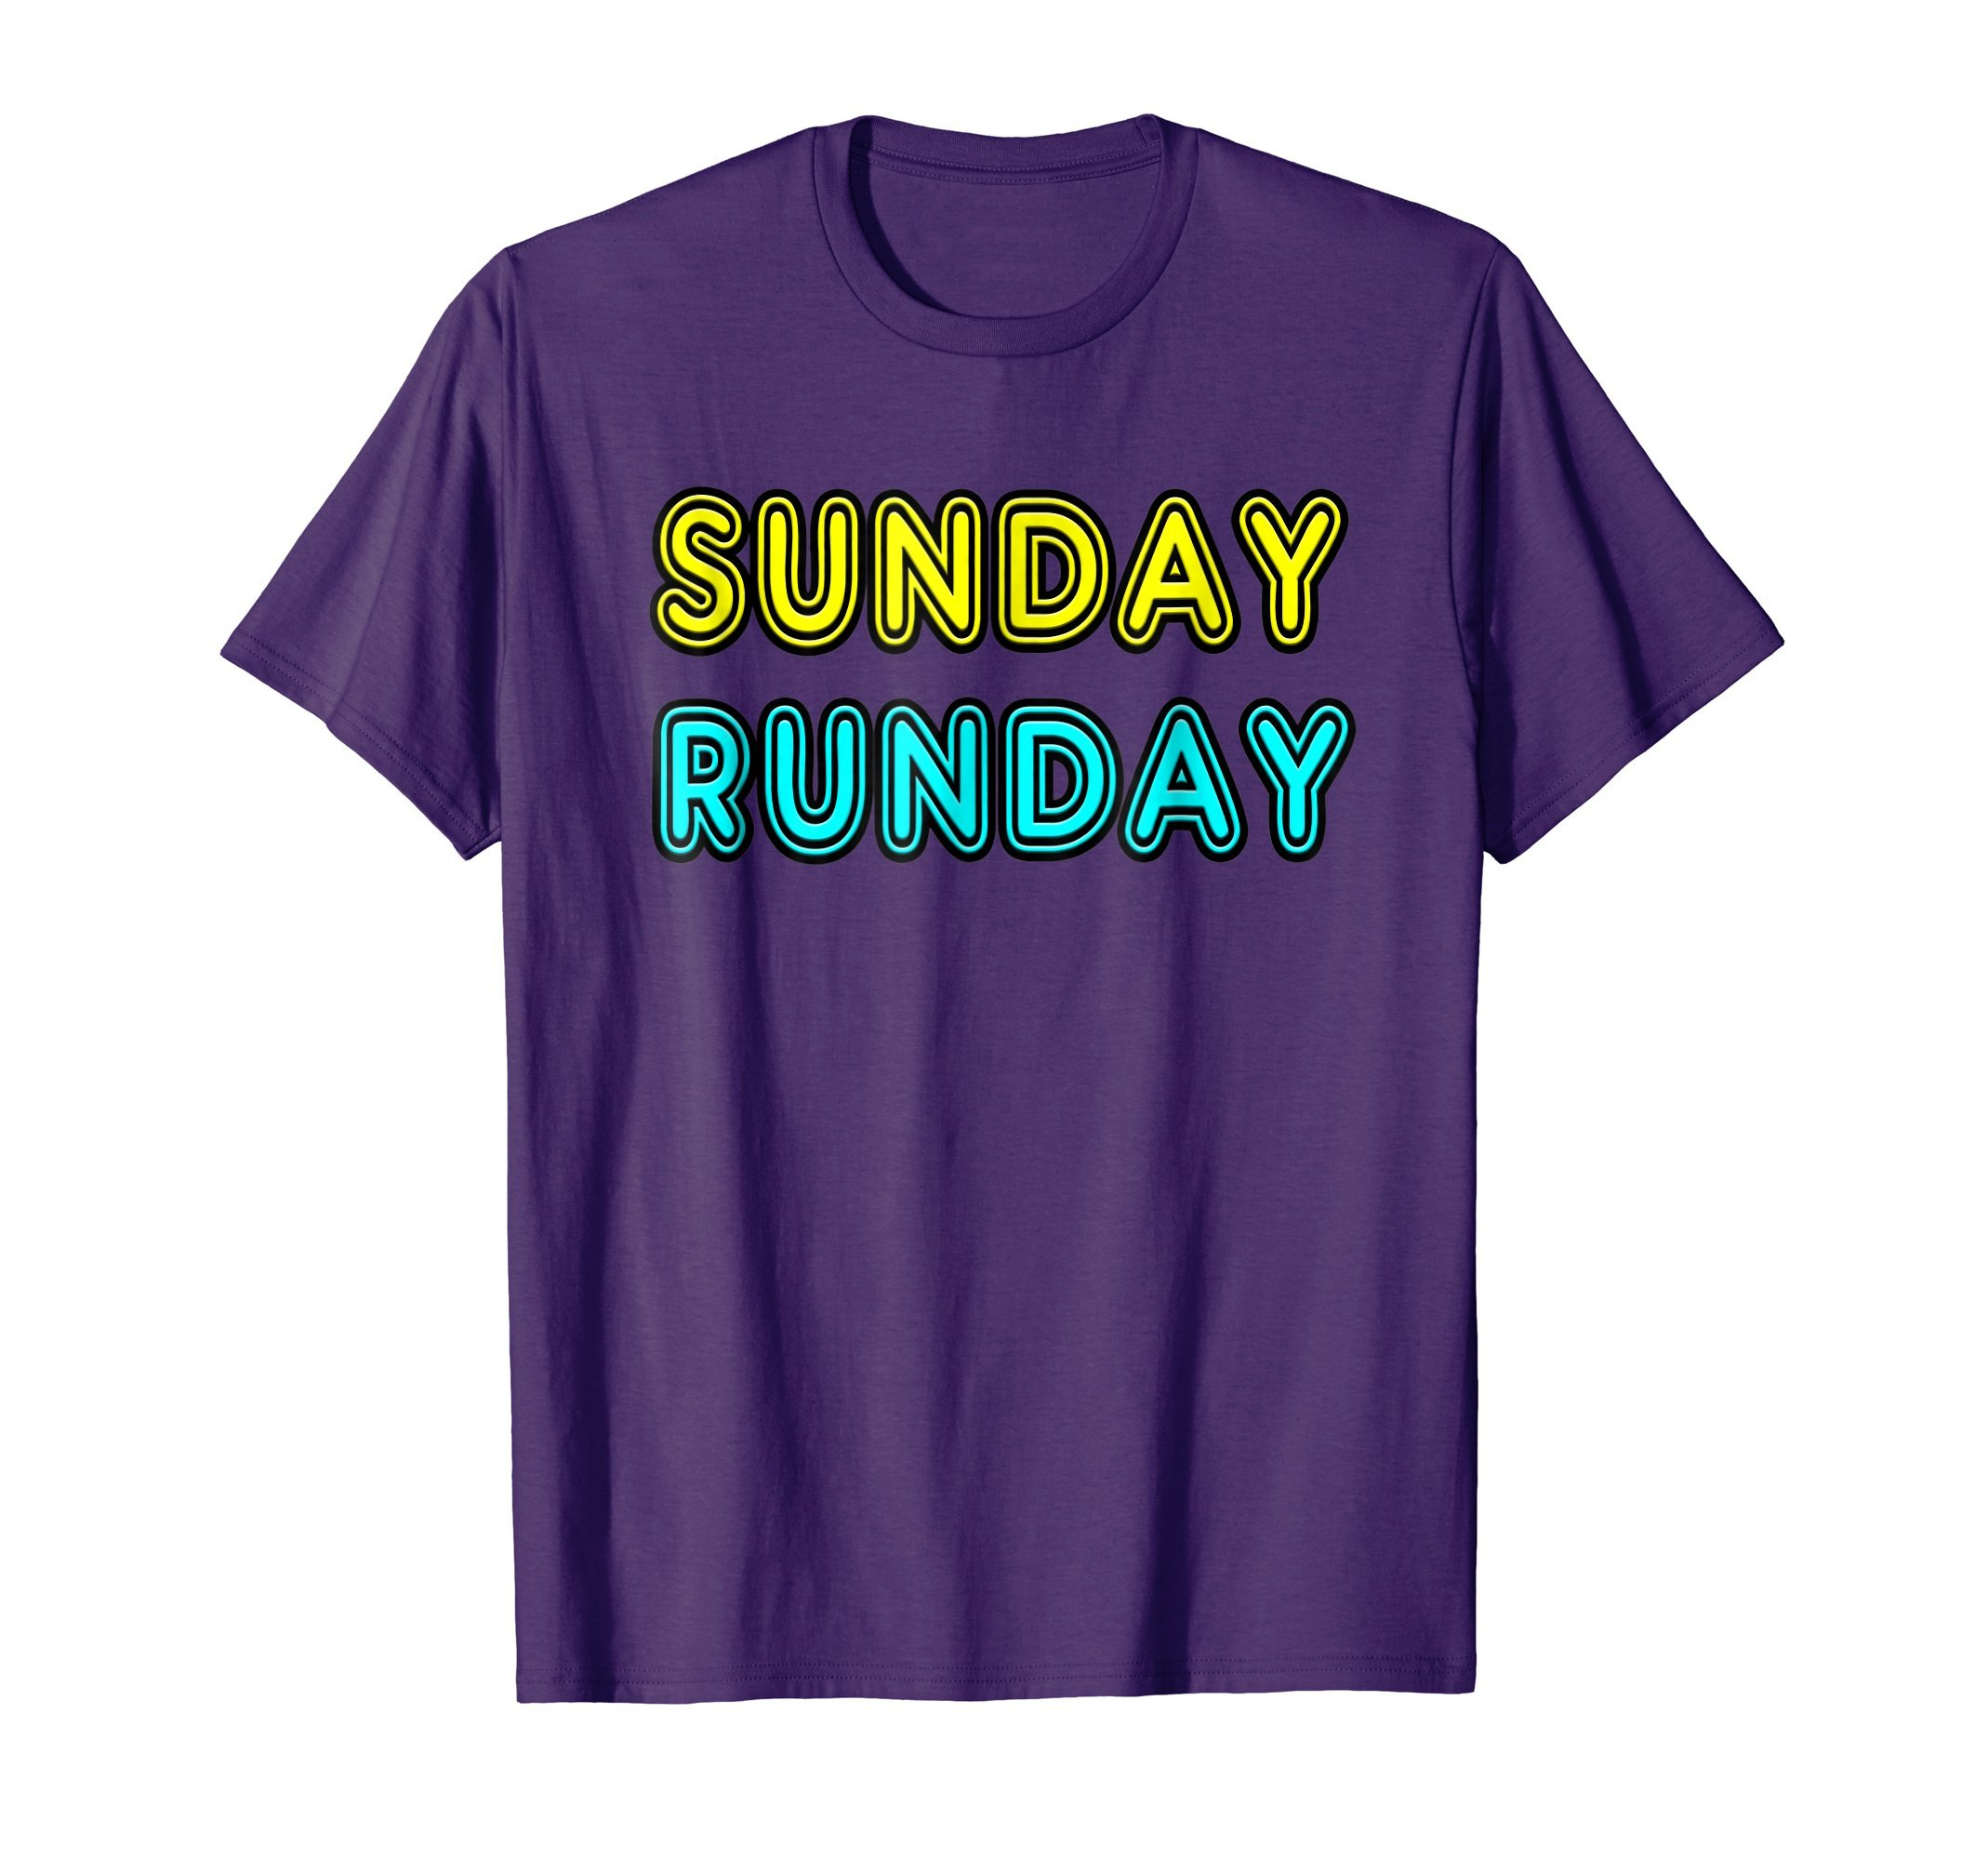 Mens Fun Retro 80's Neon Sunday Runday Gift T-Shirt Women & Men 3XL Purple